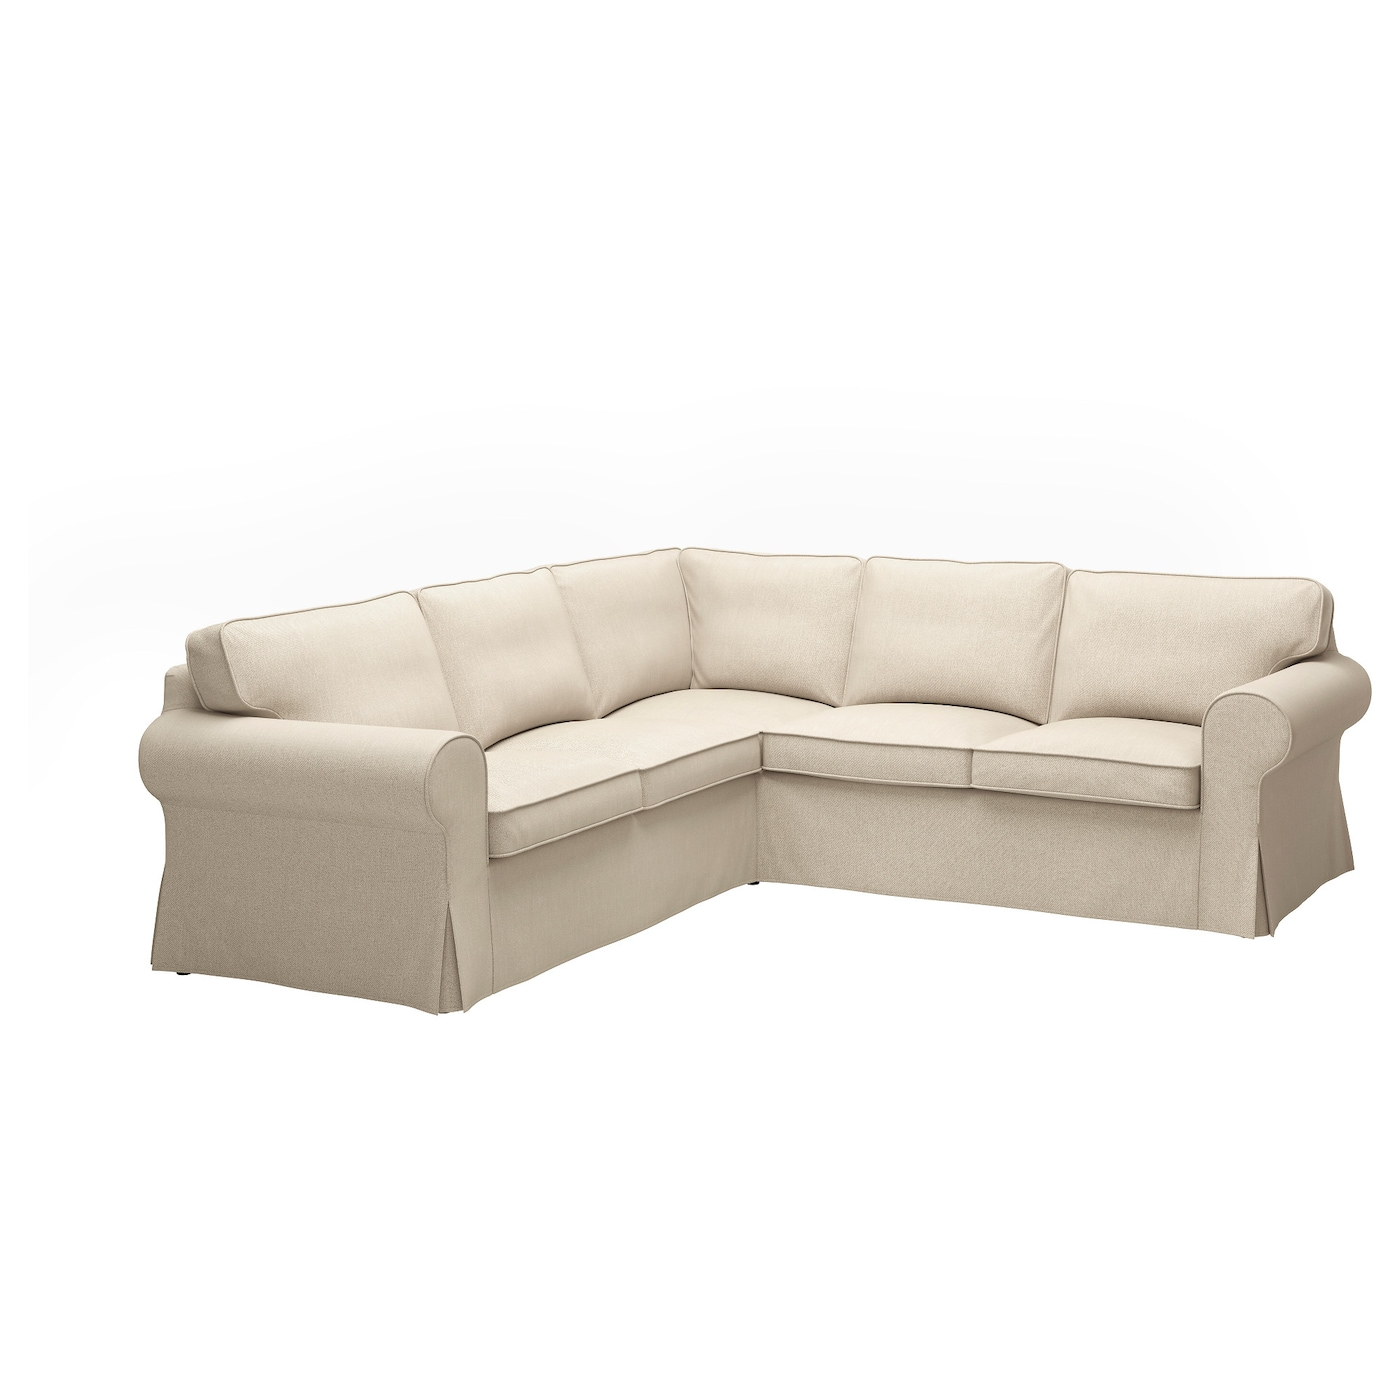 Ikea Rp Corner Sofa 4 Seat 10 Year Guarantee Read About The Terms